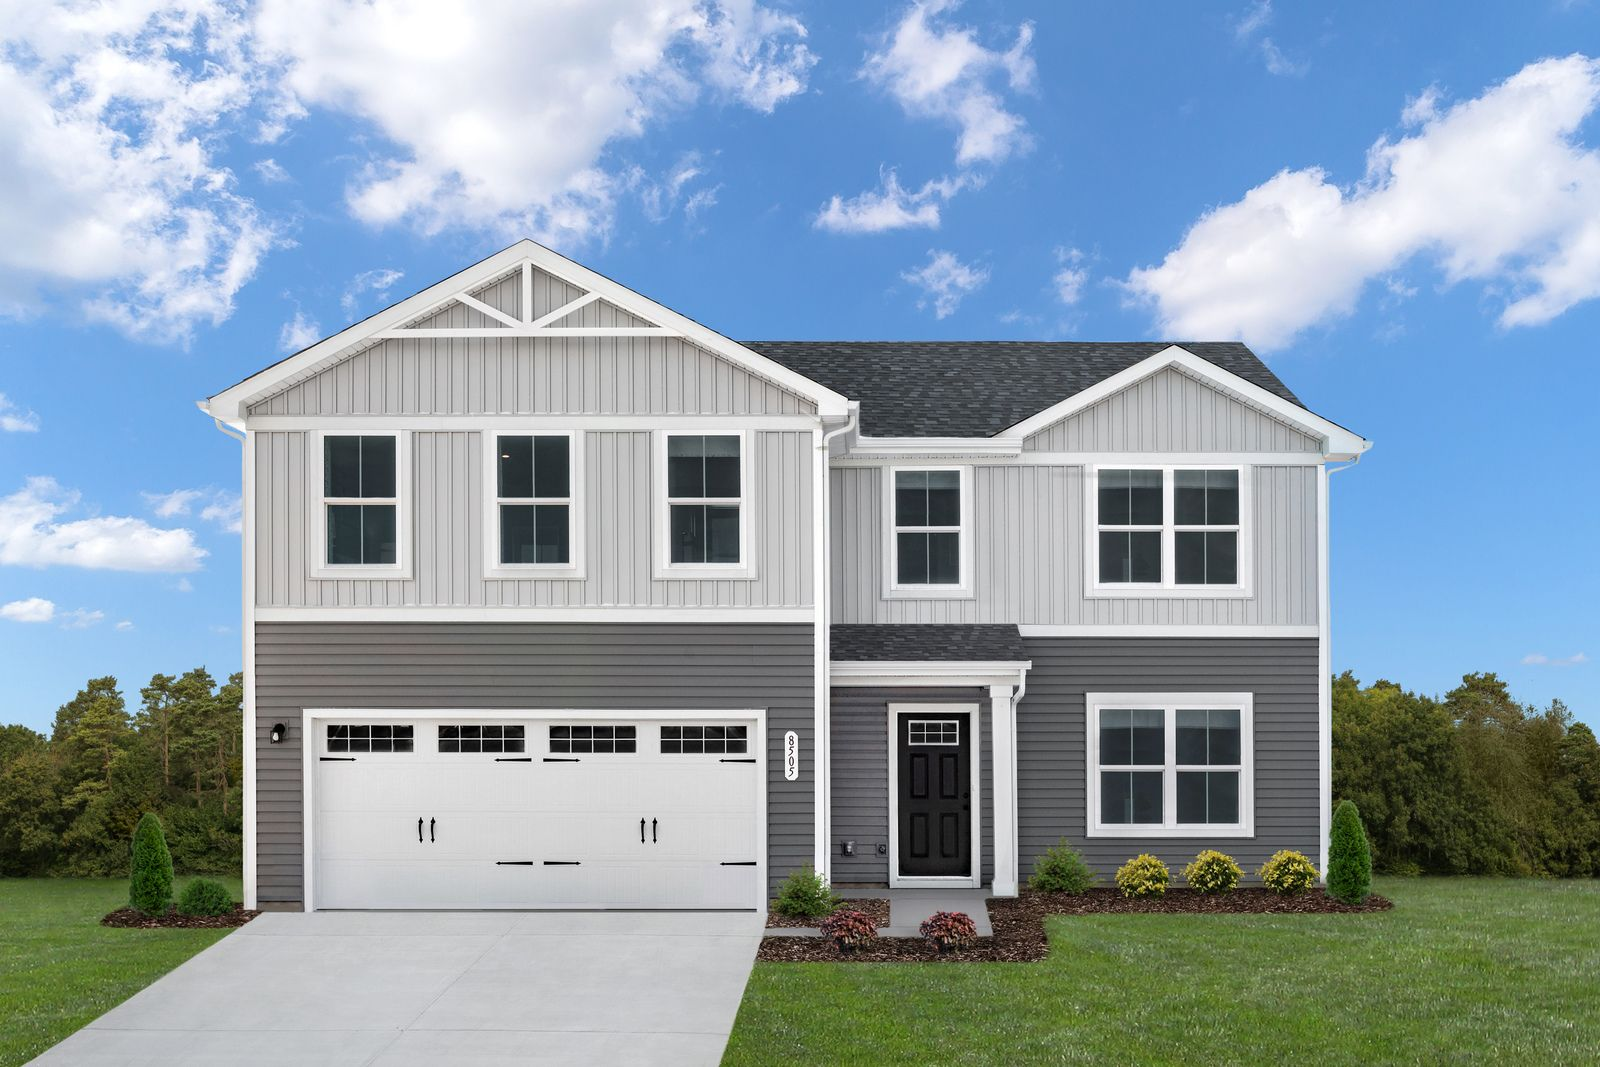 Concord Springs - Best New Home Value in White House:Enjoy a convenient location minutes from I-65 with a short drive to downtown Nashville - new phase coming soon!Click here to join the VIP list to be the first to purchase when we open.